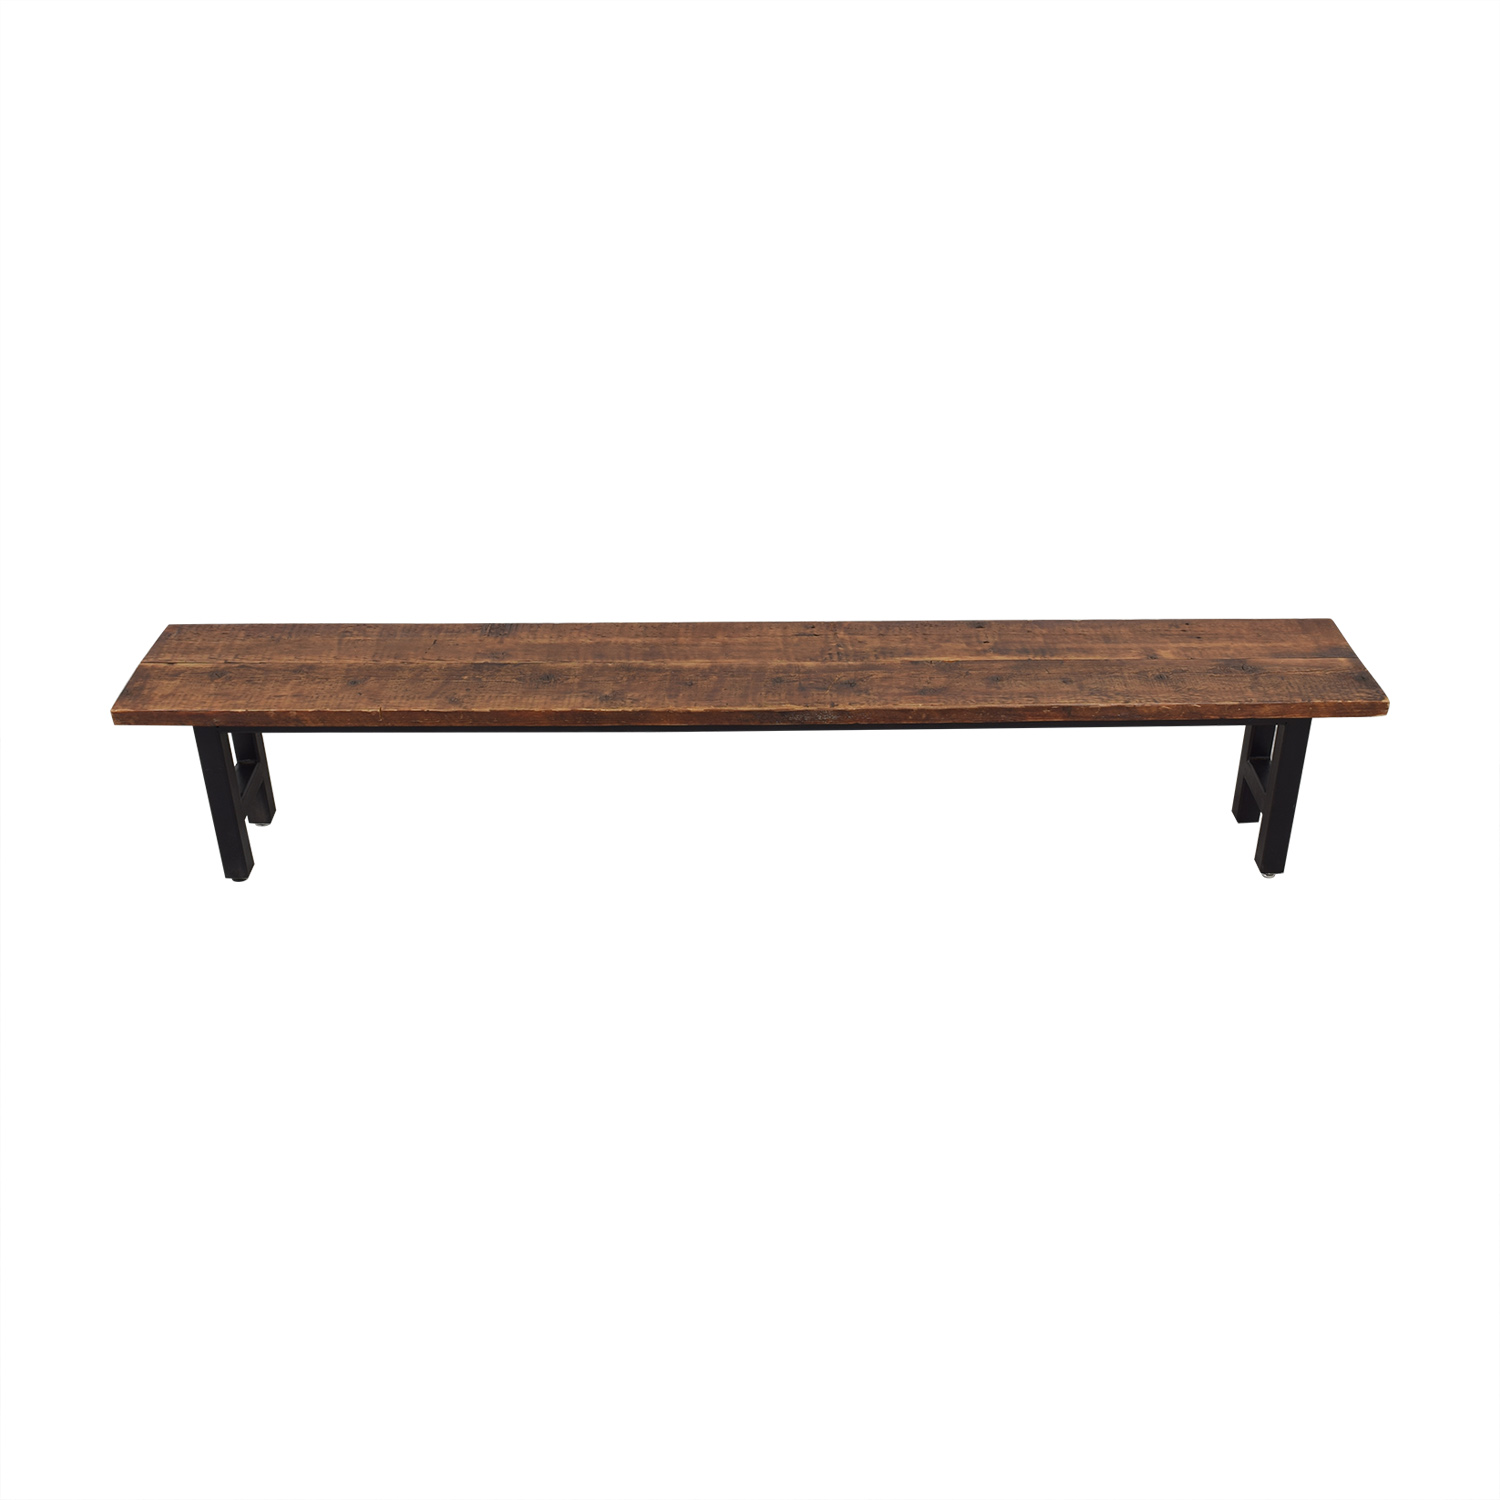 Reclaimed Wood Bench price